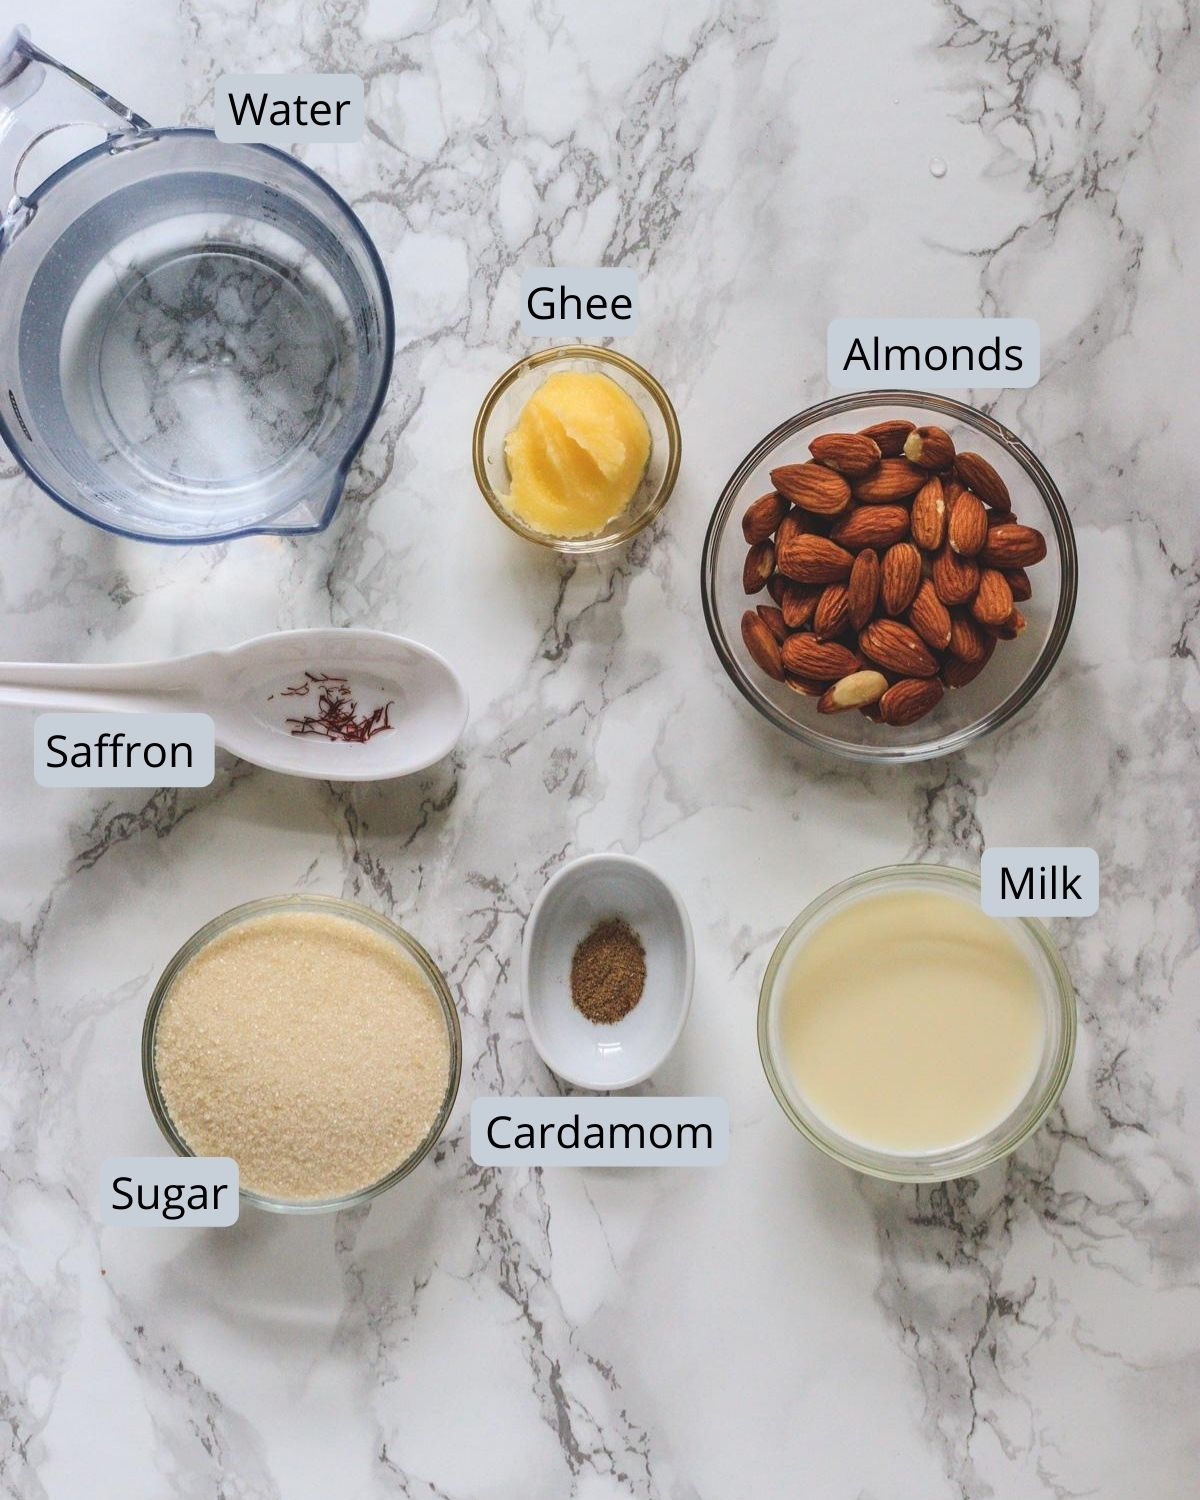 Ingredients used in almond halwa includes almonds, sugar, milk, ghee, saffron, cardamom, water.